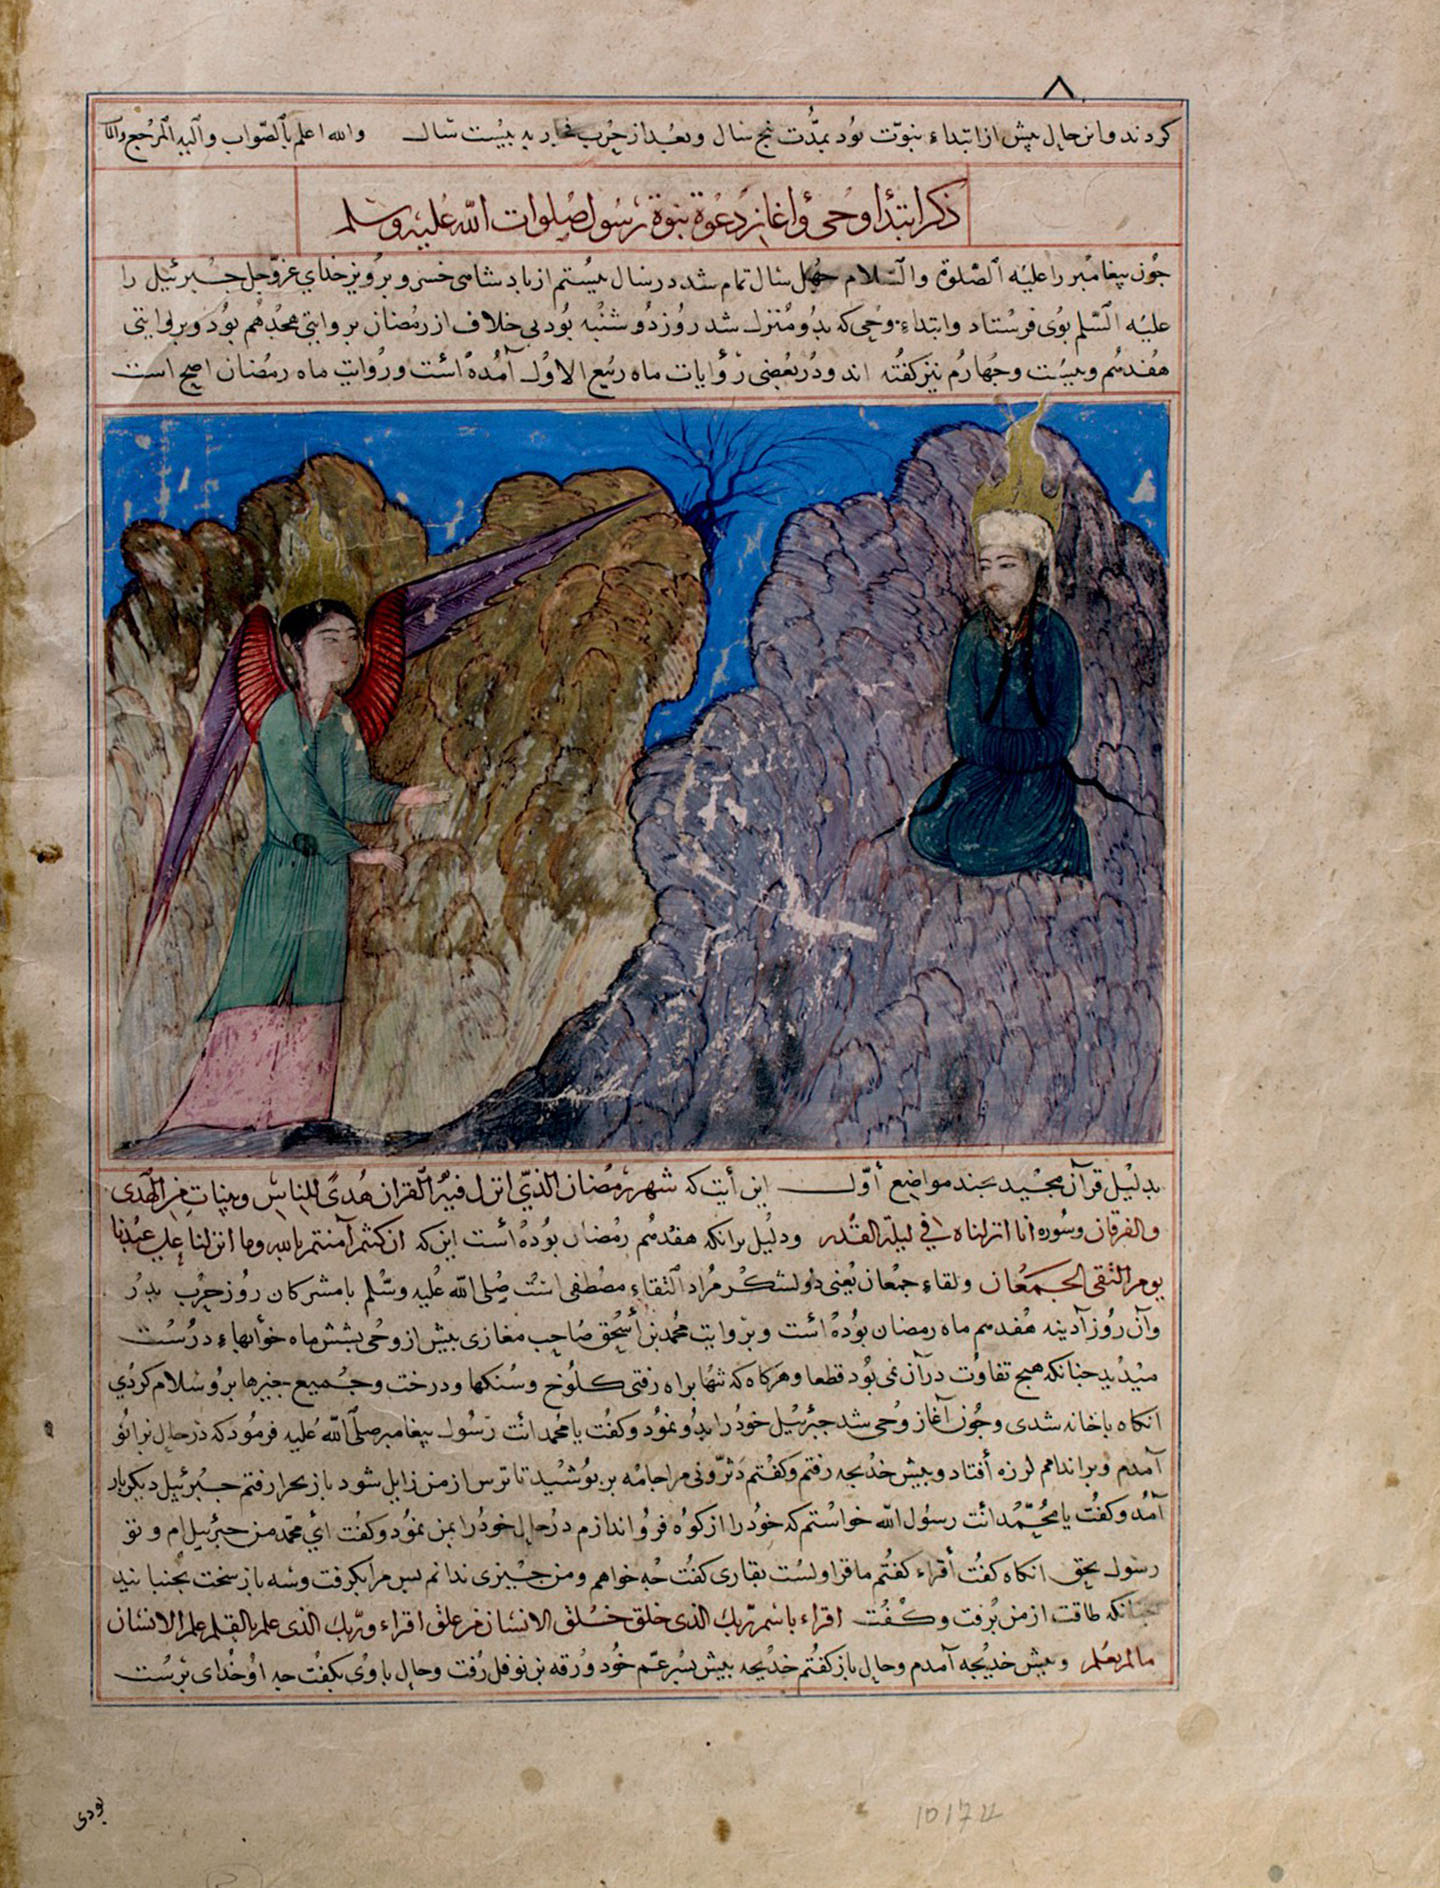 A colorful page from an Islamic manuscript with an illustration of two figures on a mountainside: on the left an angel wearing a green robe, with red and purple wings,  and on the right, a bearded man kneeling in a blue-green robe, wearing a white turban, which is on fire